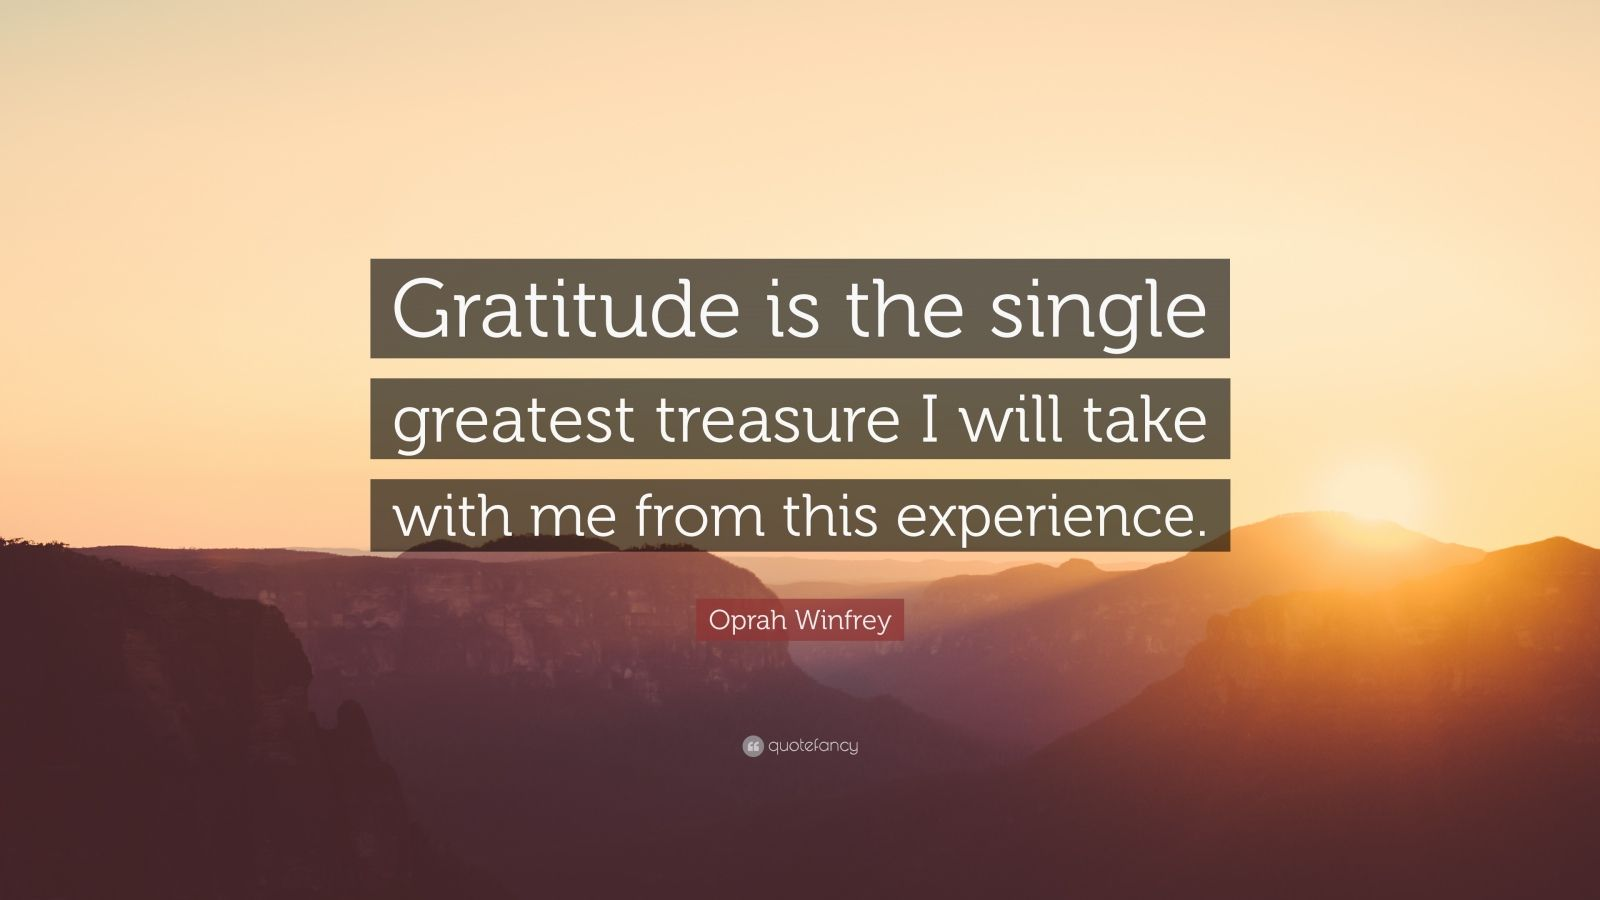 """Oprah Winfrey Quote: """"Gratitude is the single greatest treasure I will take with me from this experience."""""""